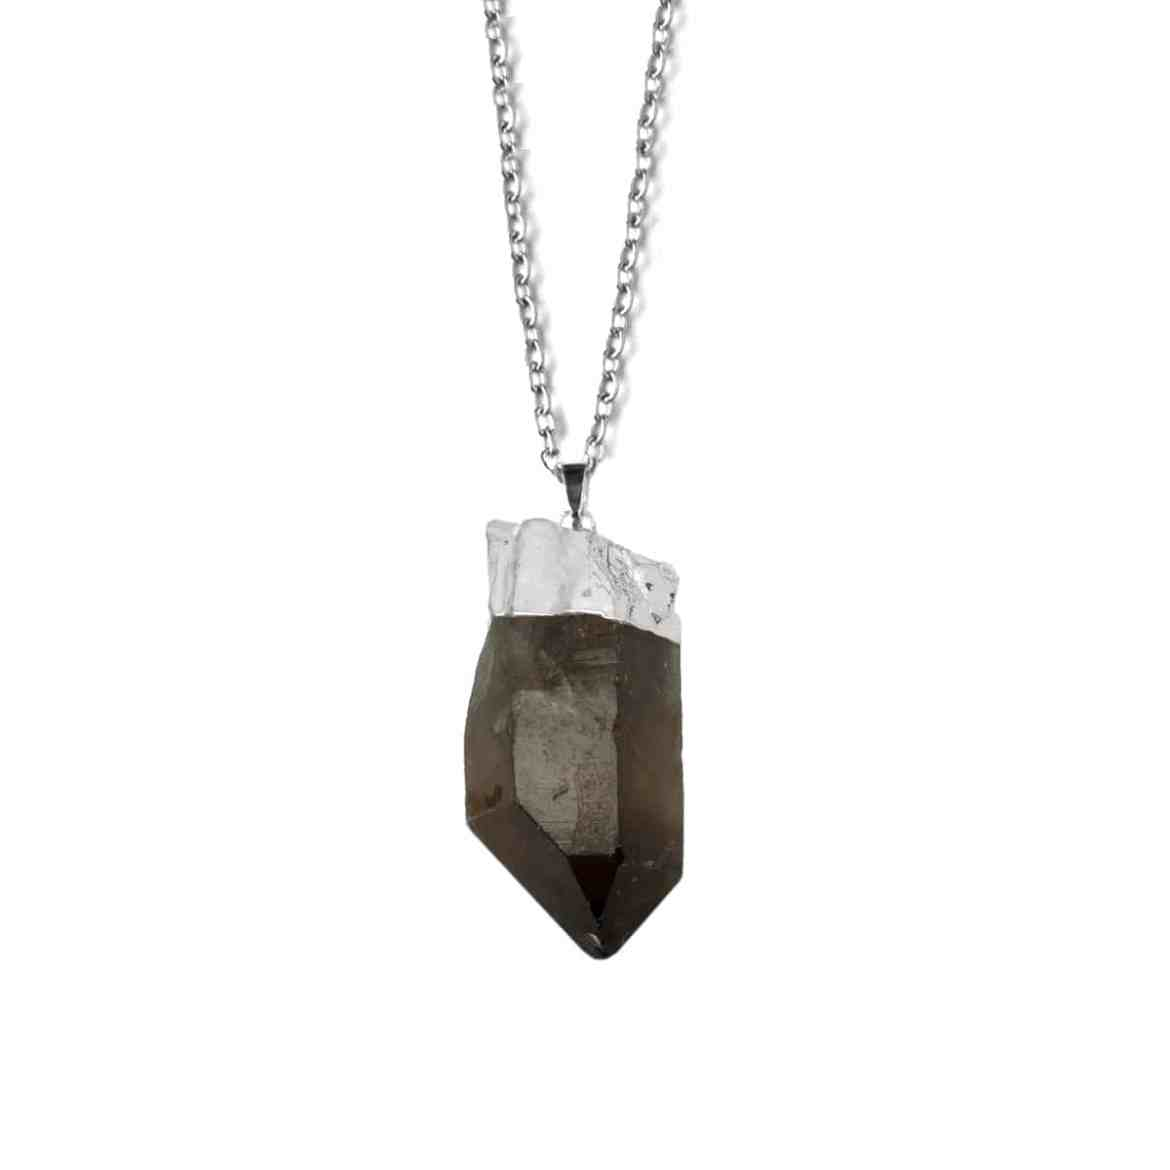 XL Smoke Quartz Necklace